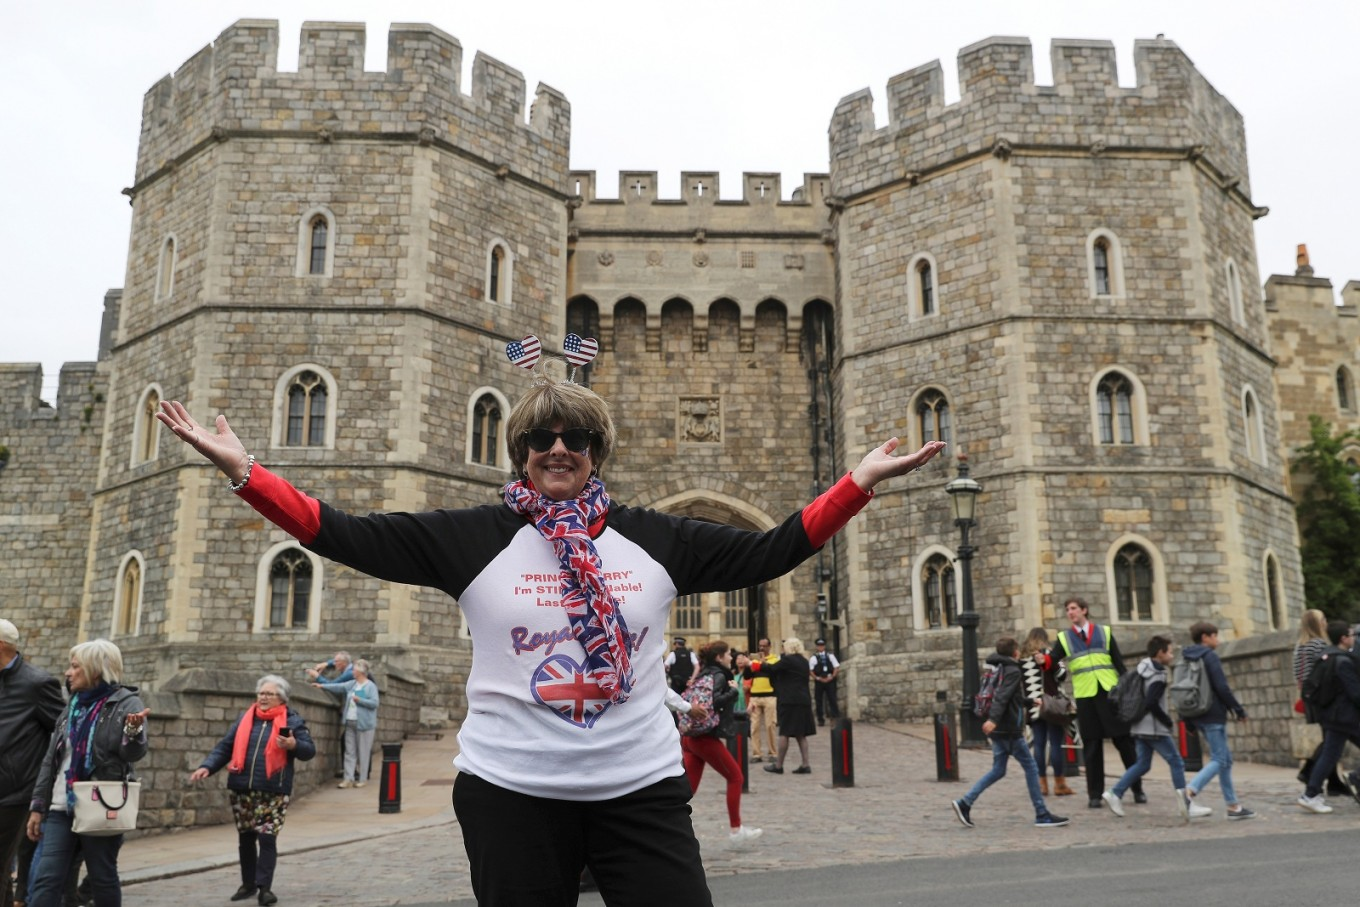 American 'super-fan' to sleep on Windsor streets for glimpse of royal couple